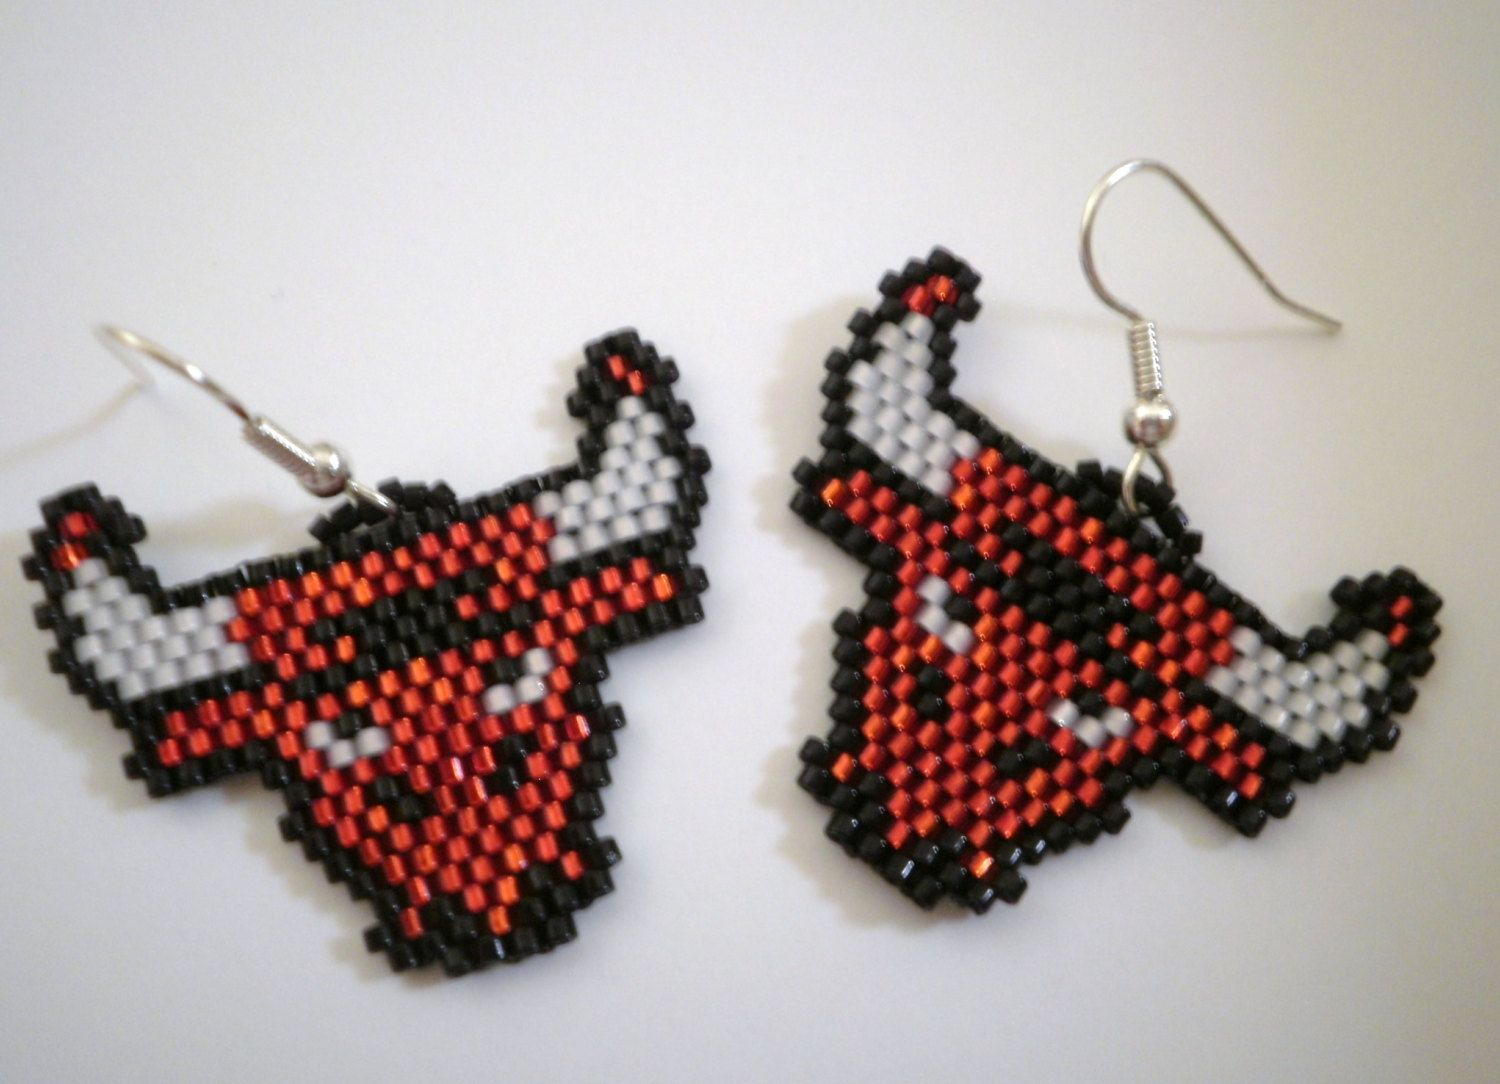 Bull Dangle Earrings Chicago Bulls Basketball Mascot By Jazminsjewels On Etsy